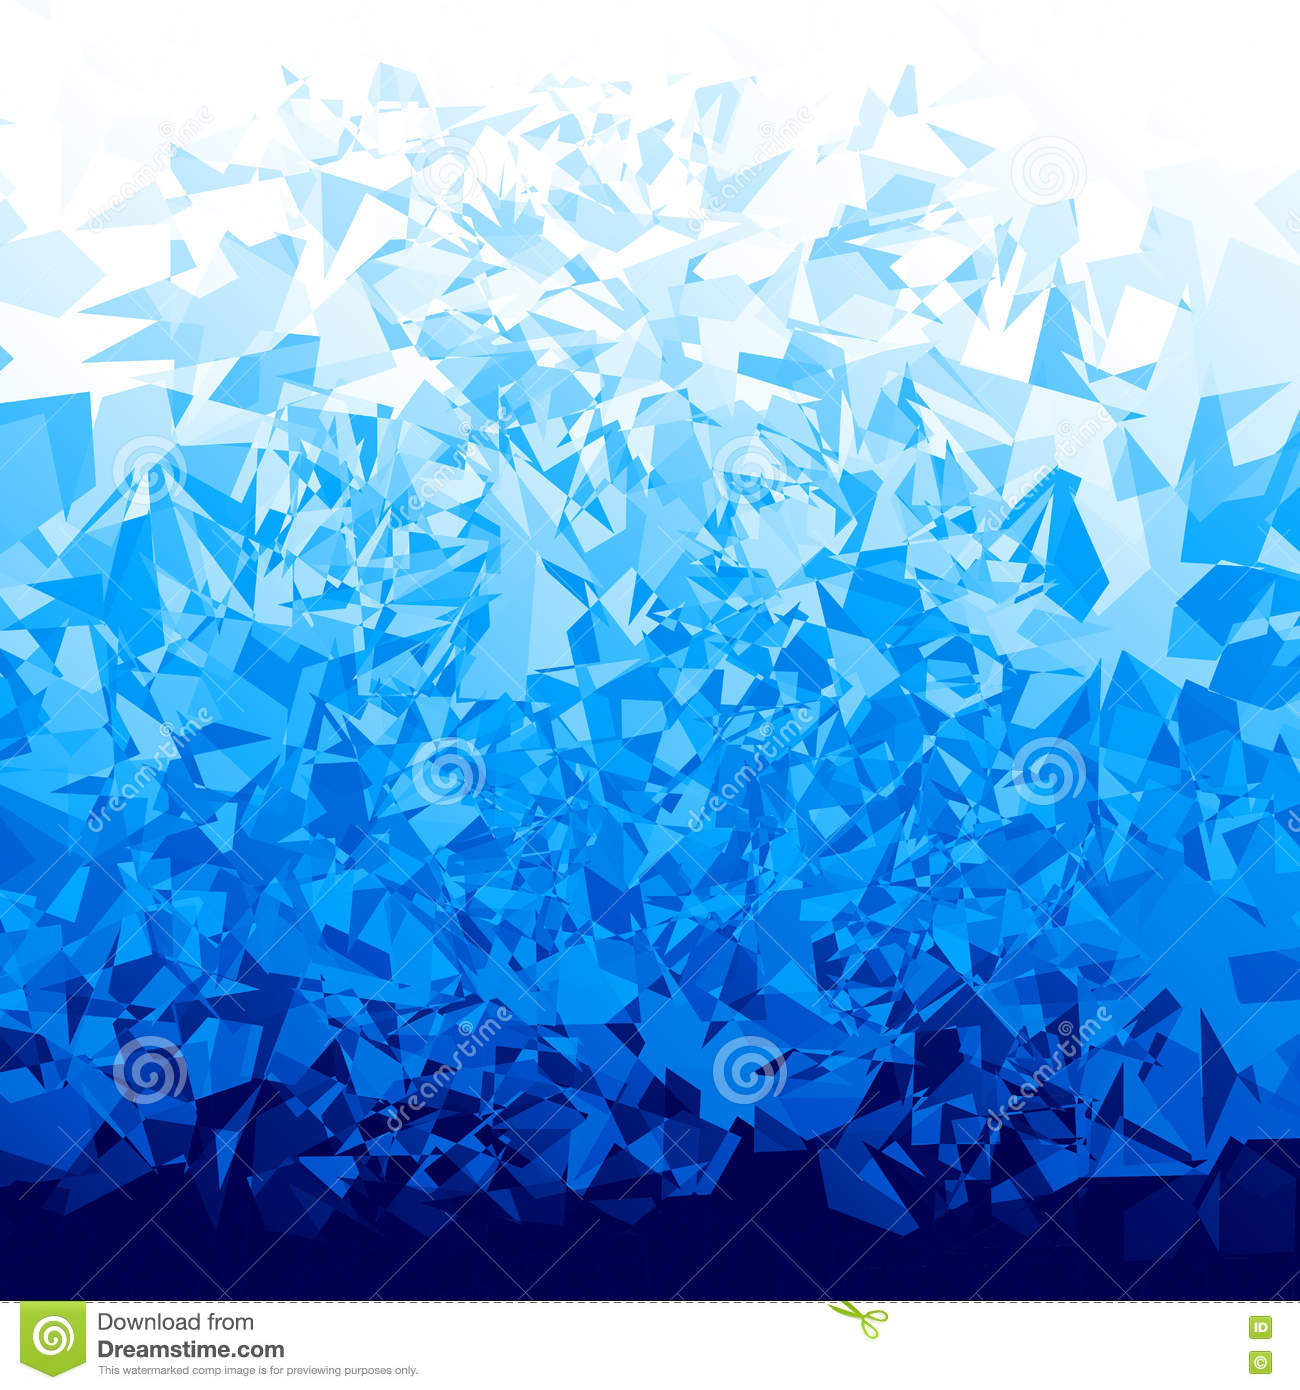 vector blue ice background stock illustrations 69 098 vector blue ice background stock illustrations vectors clipart dreamstime dreamstime com